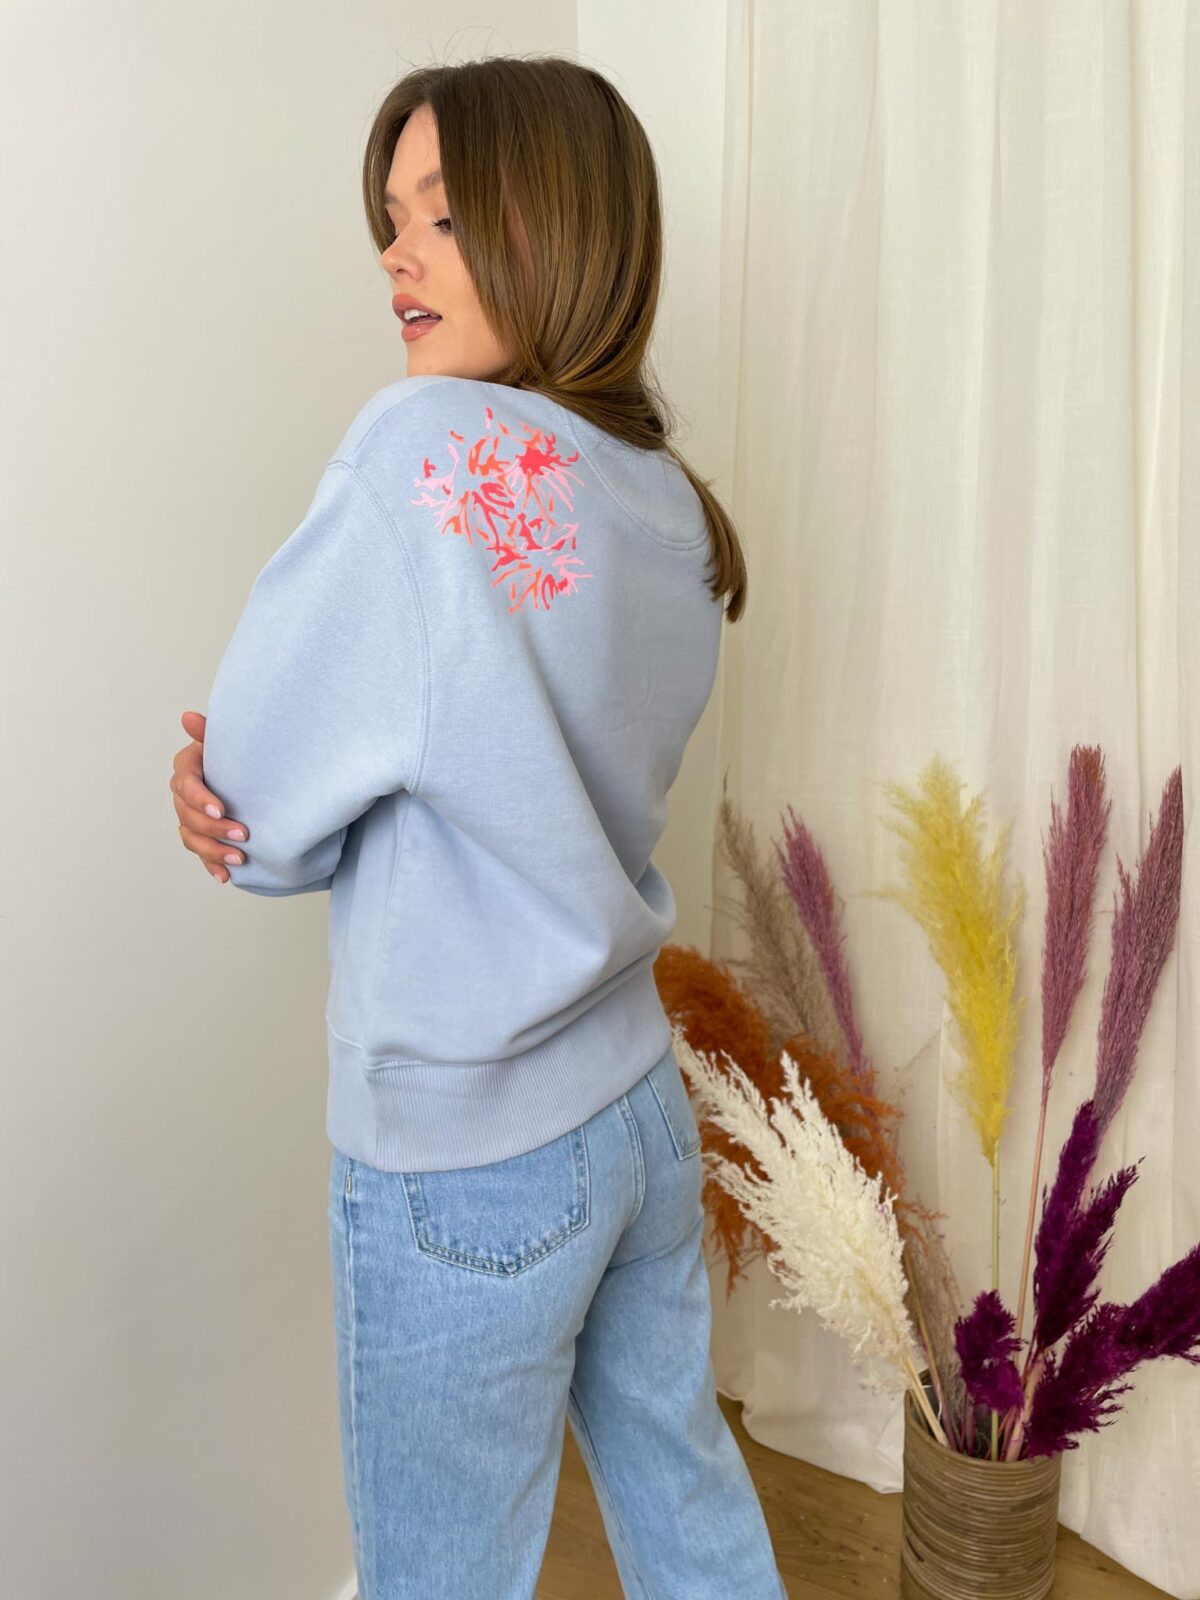 woman with a light blue sweater and denim pants